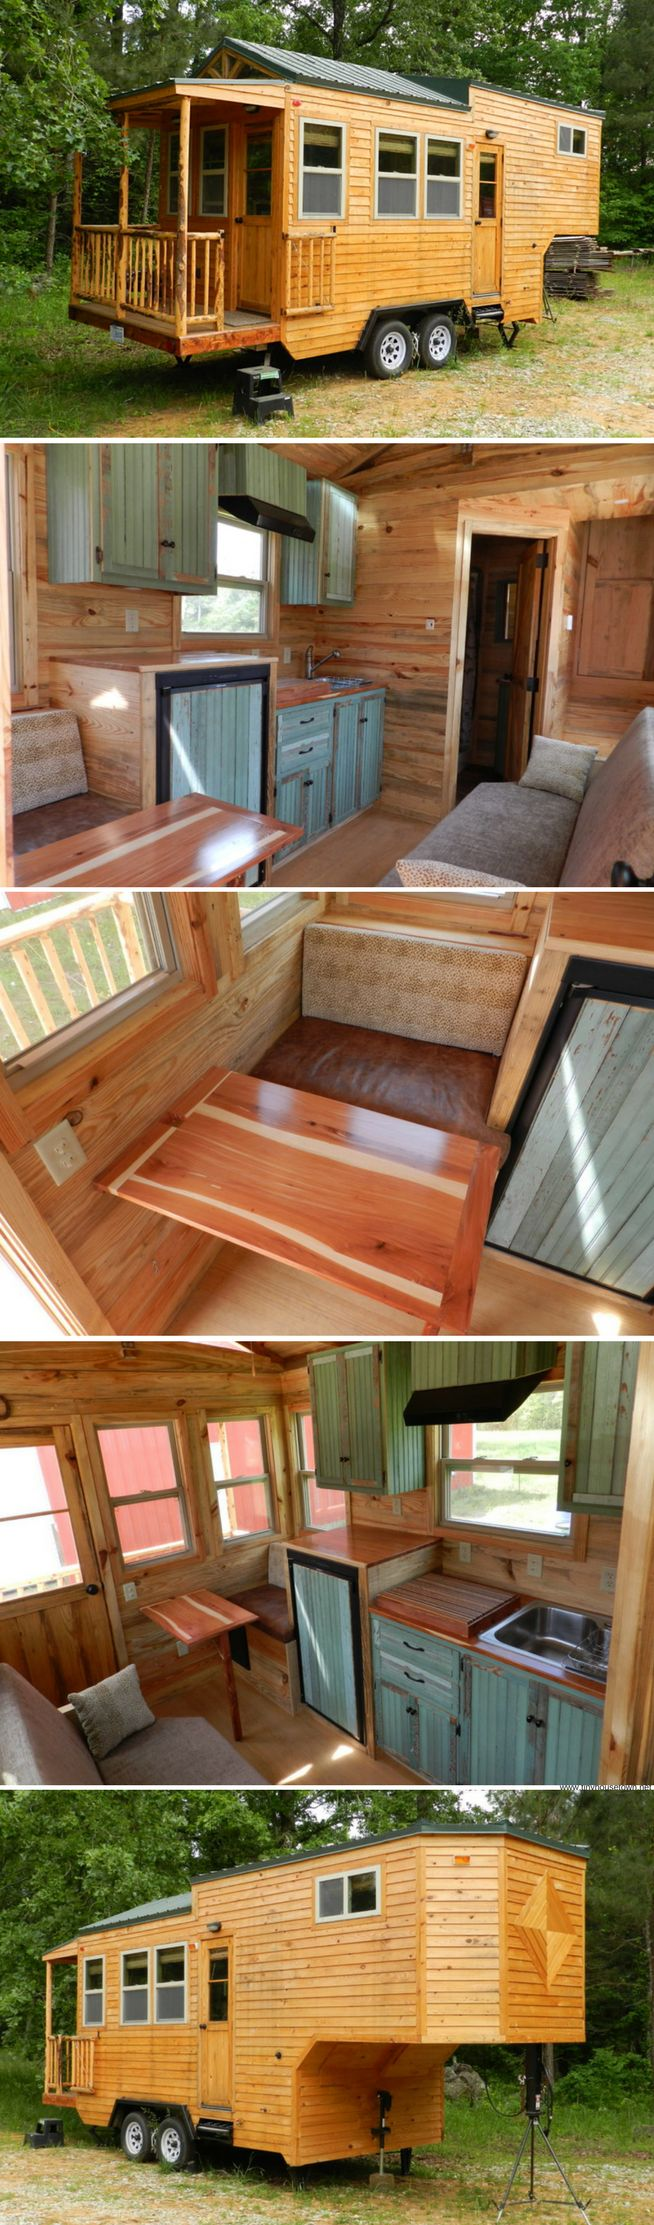 Mississippi Tiny House (204 sq ft)